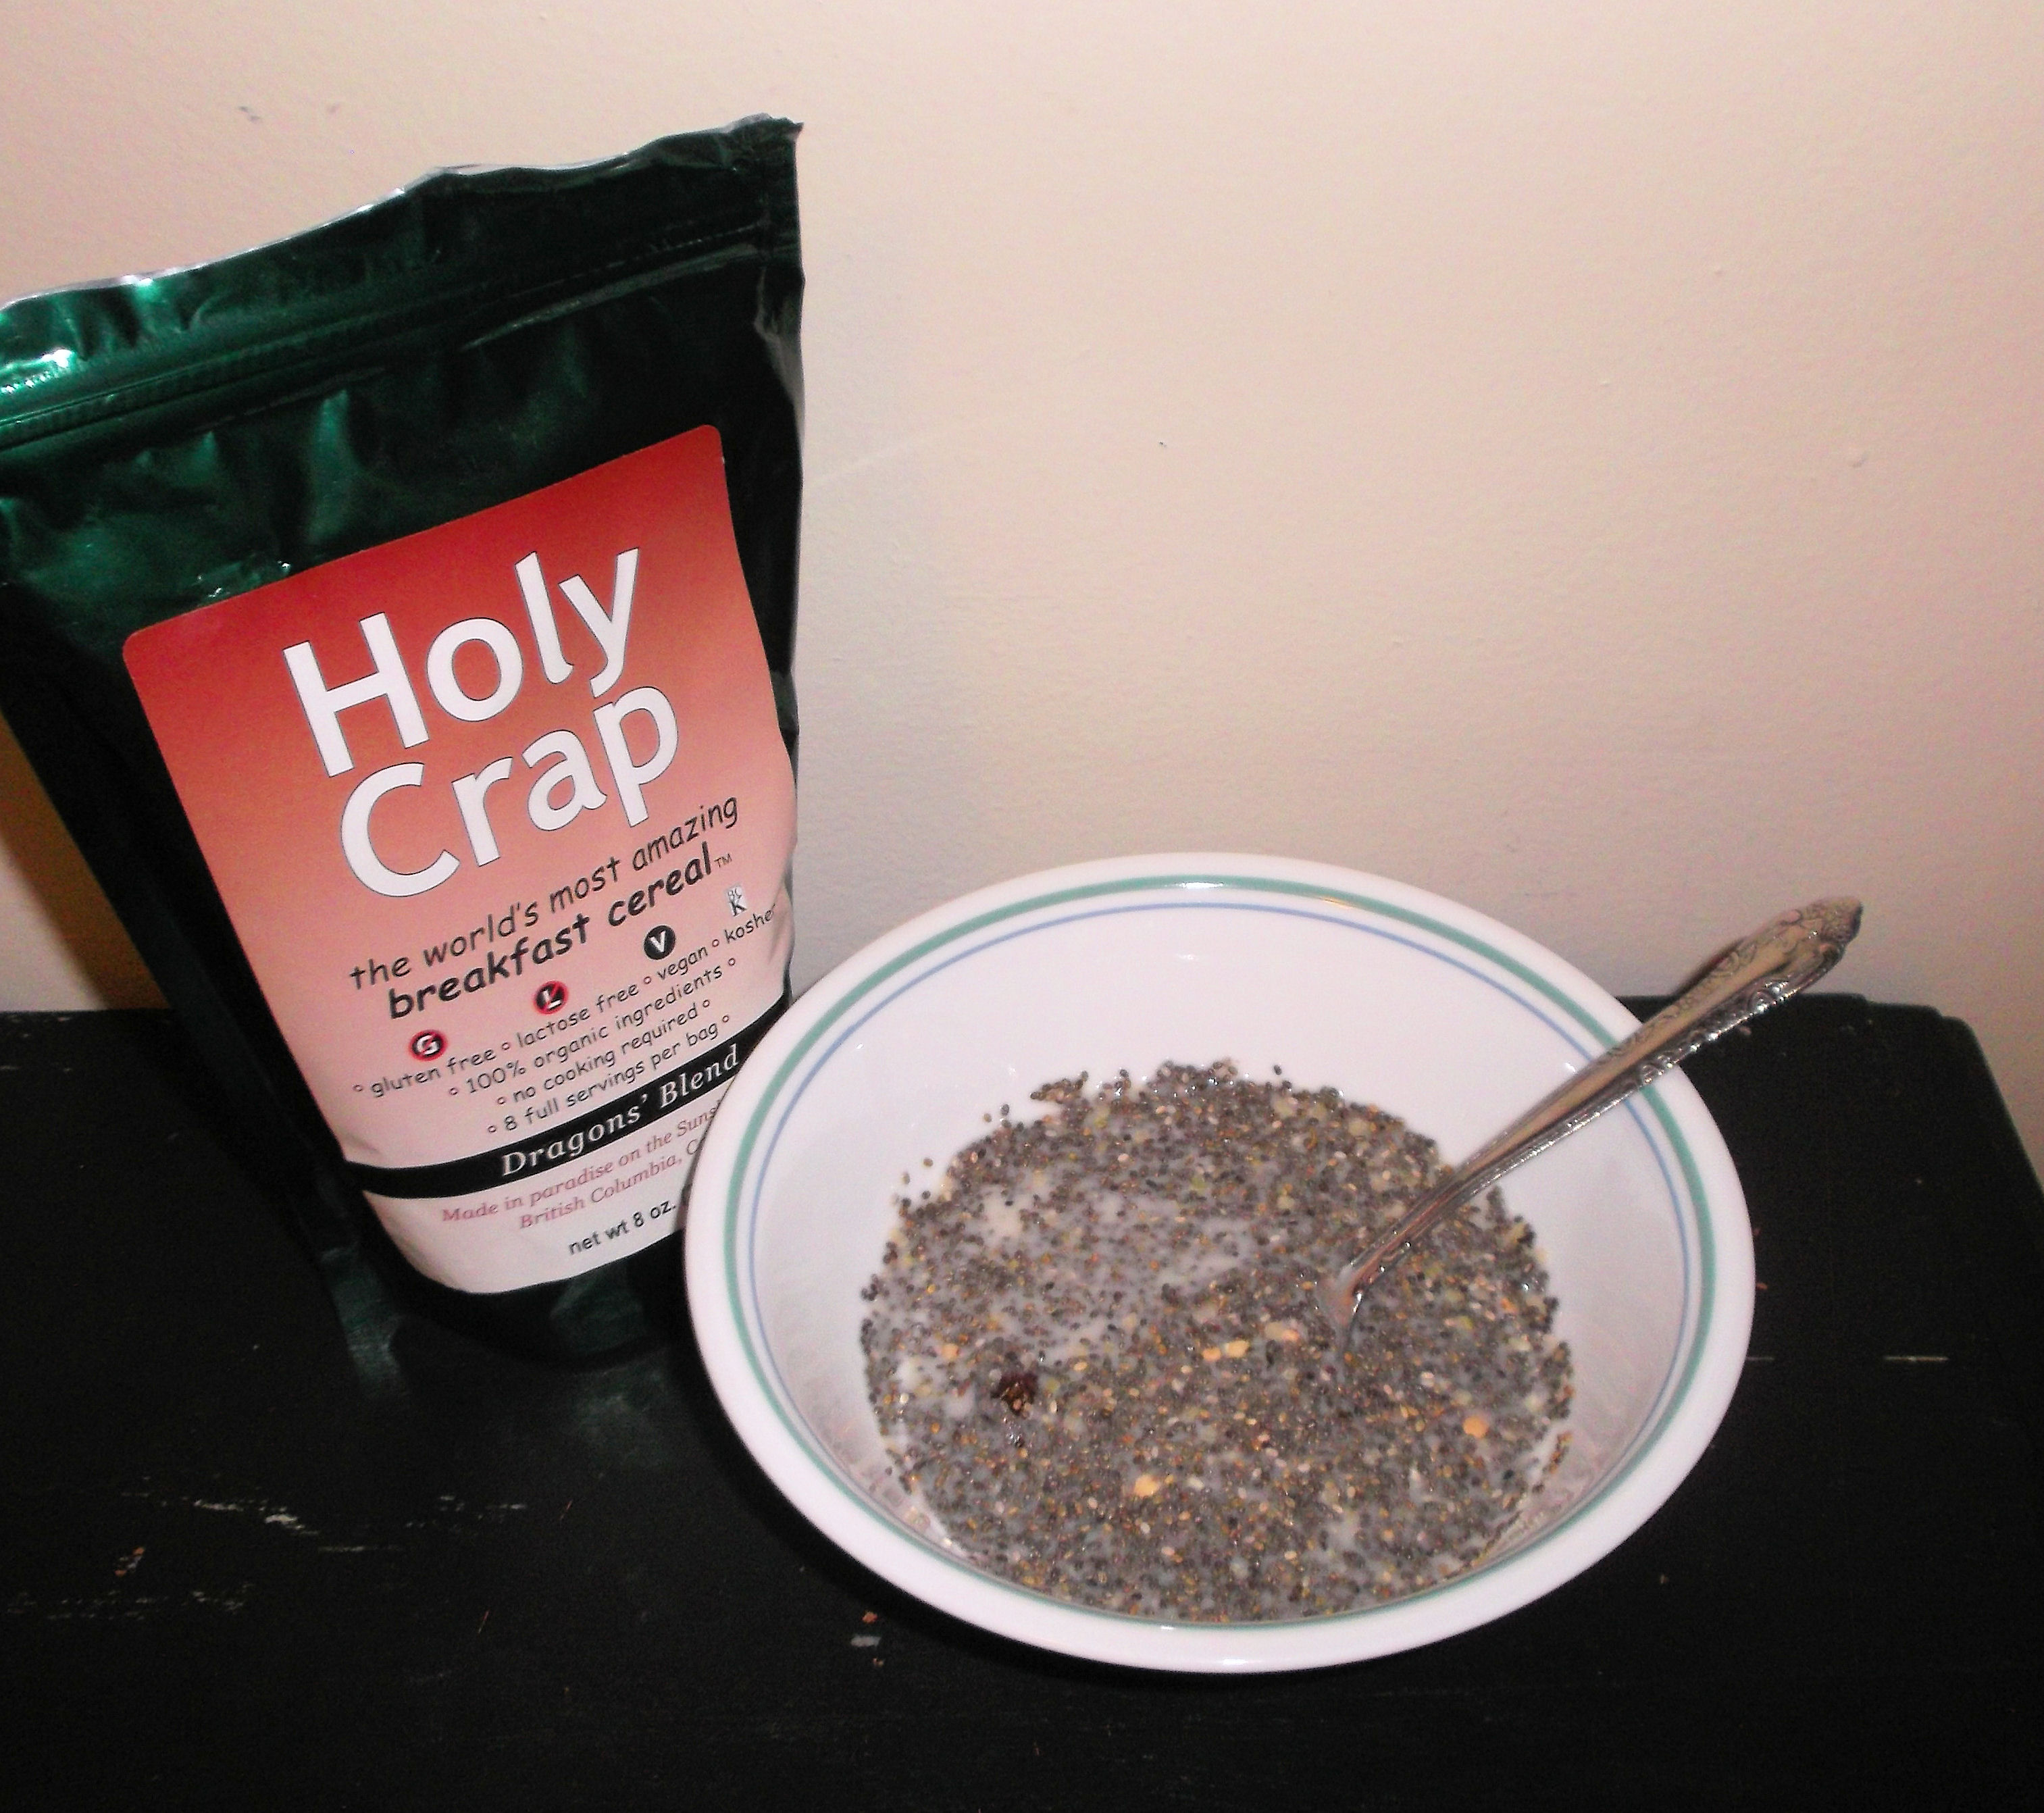 Holy Crap! This is GREAT cereal!